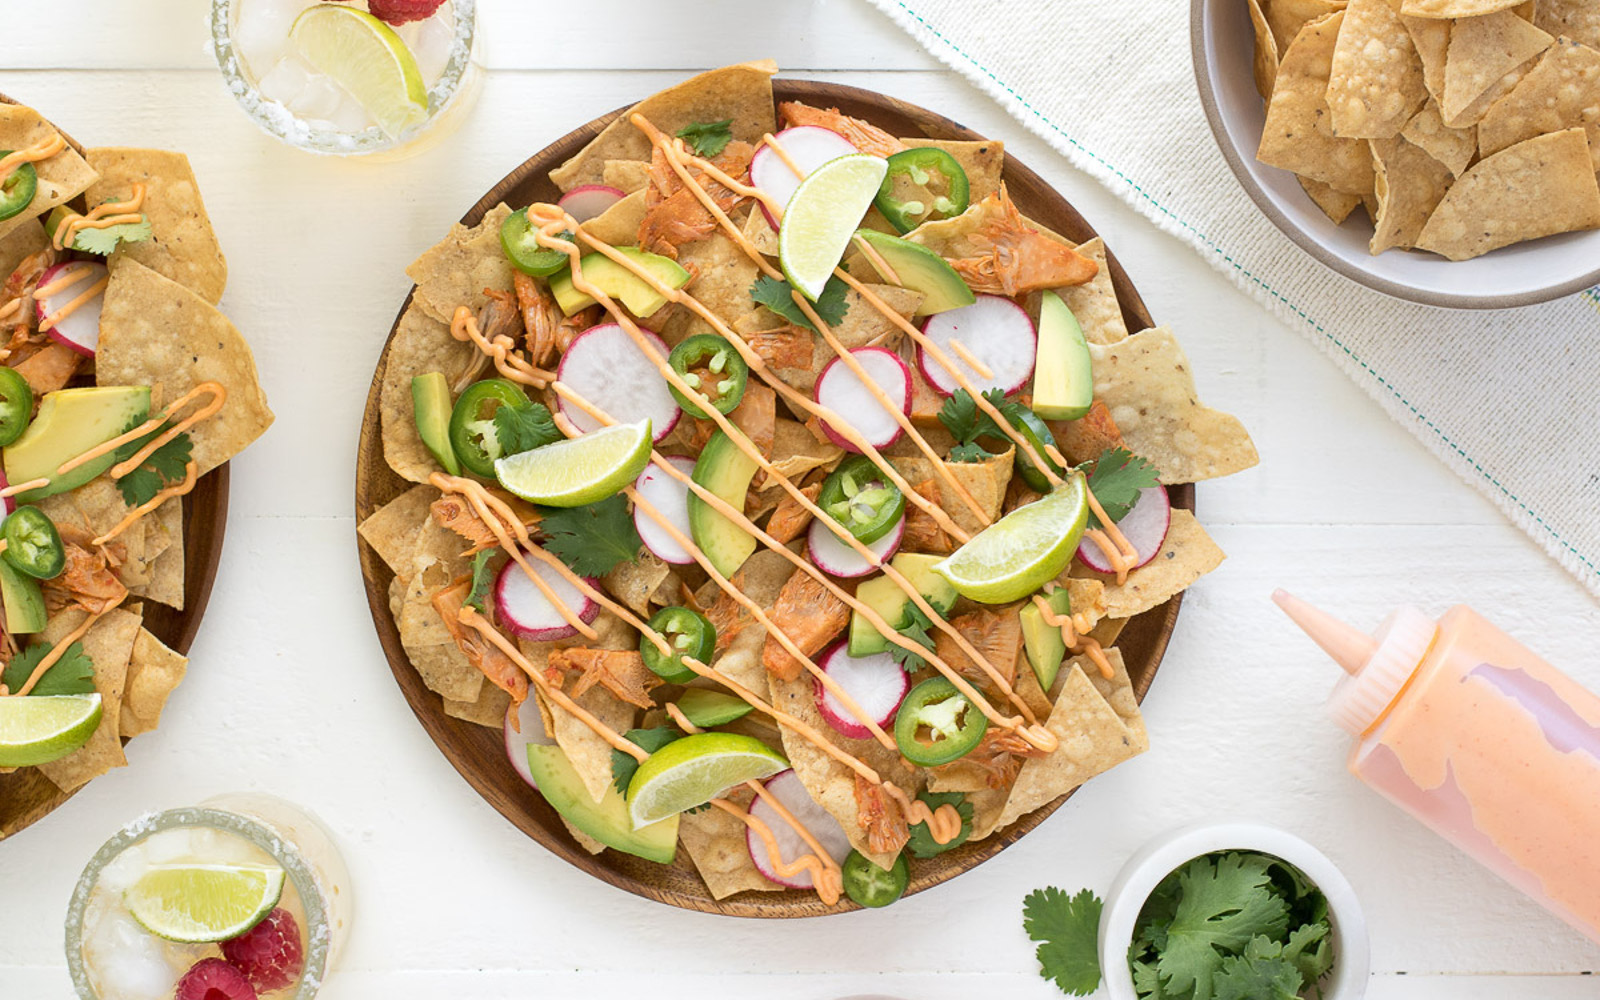 Chili Lime Jackfruit Nachos